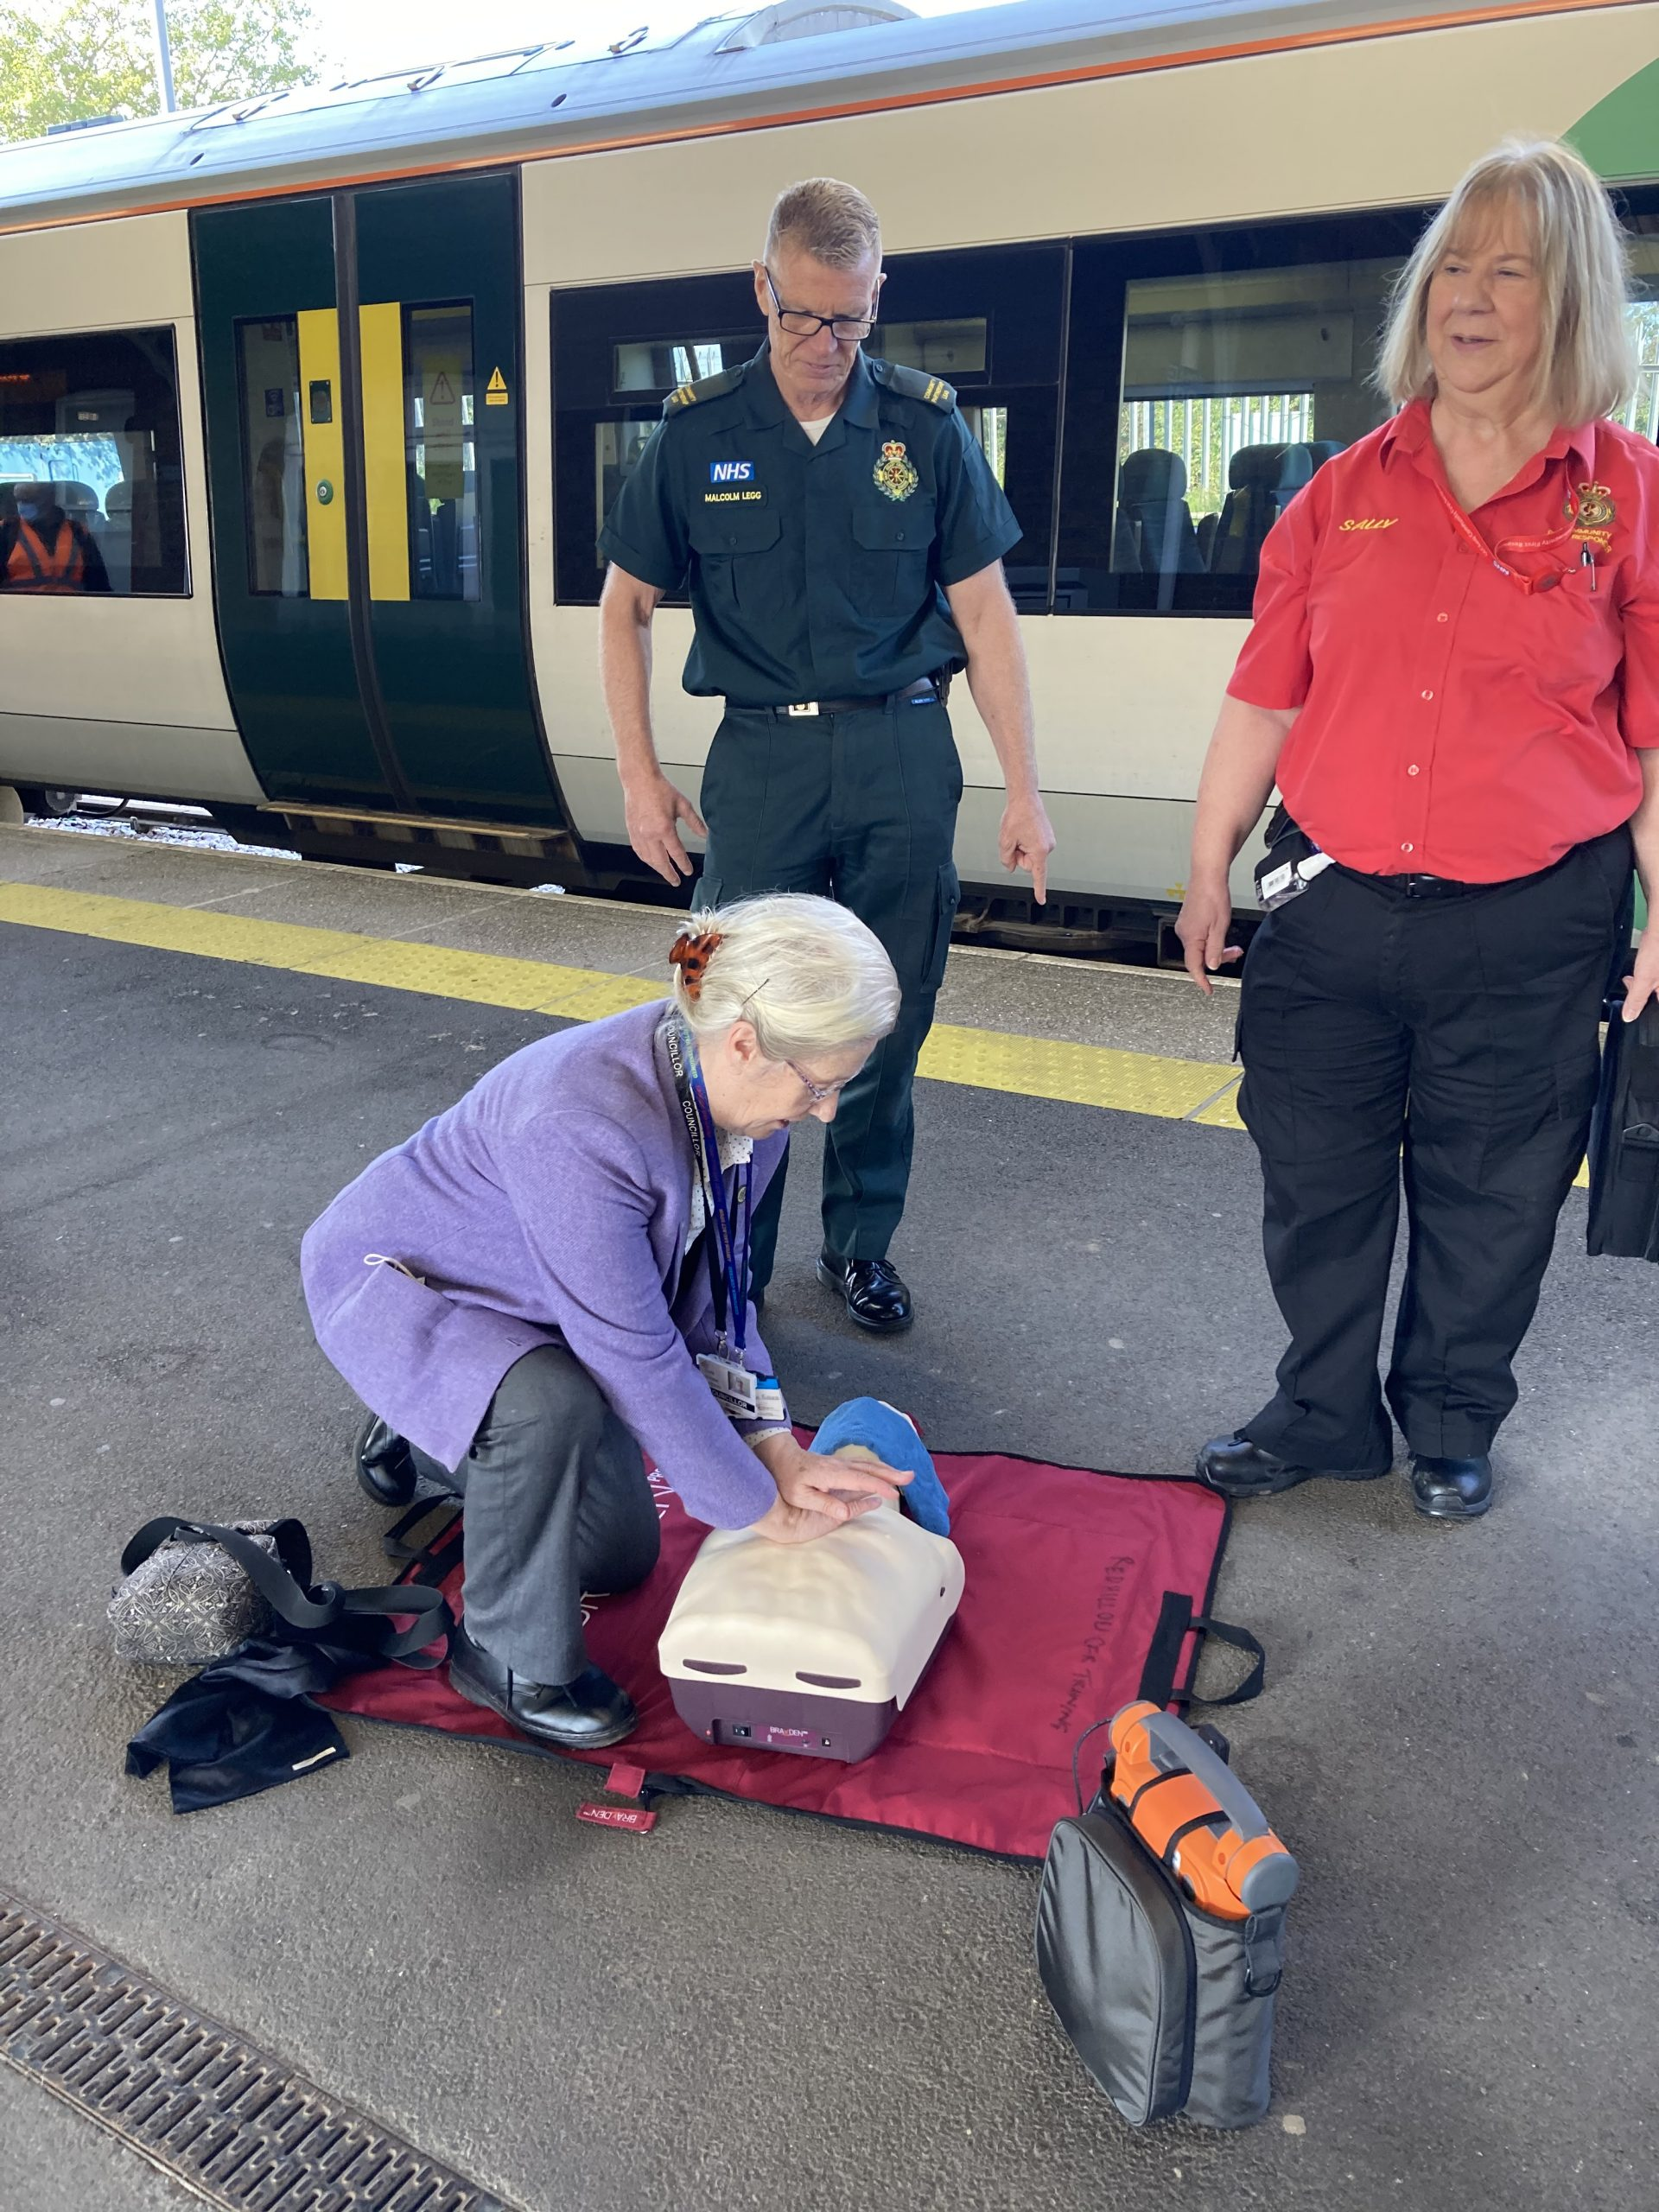 Station Partners learn how to save lives at Three Bridges